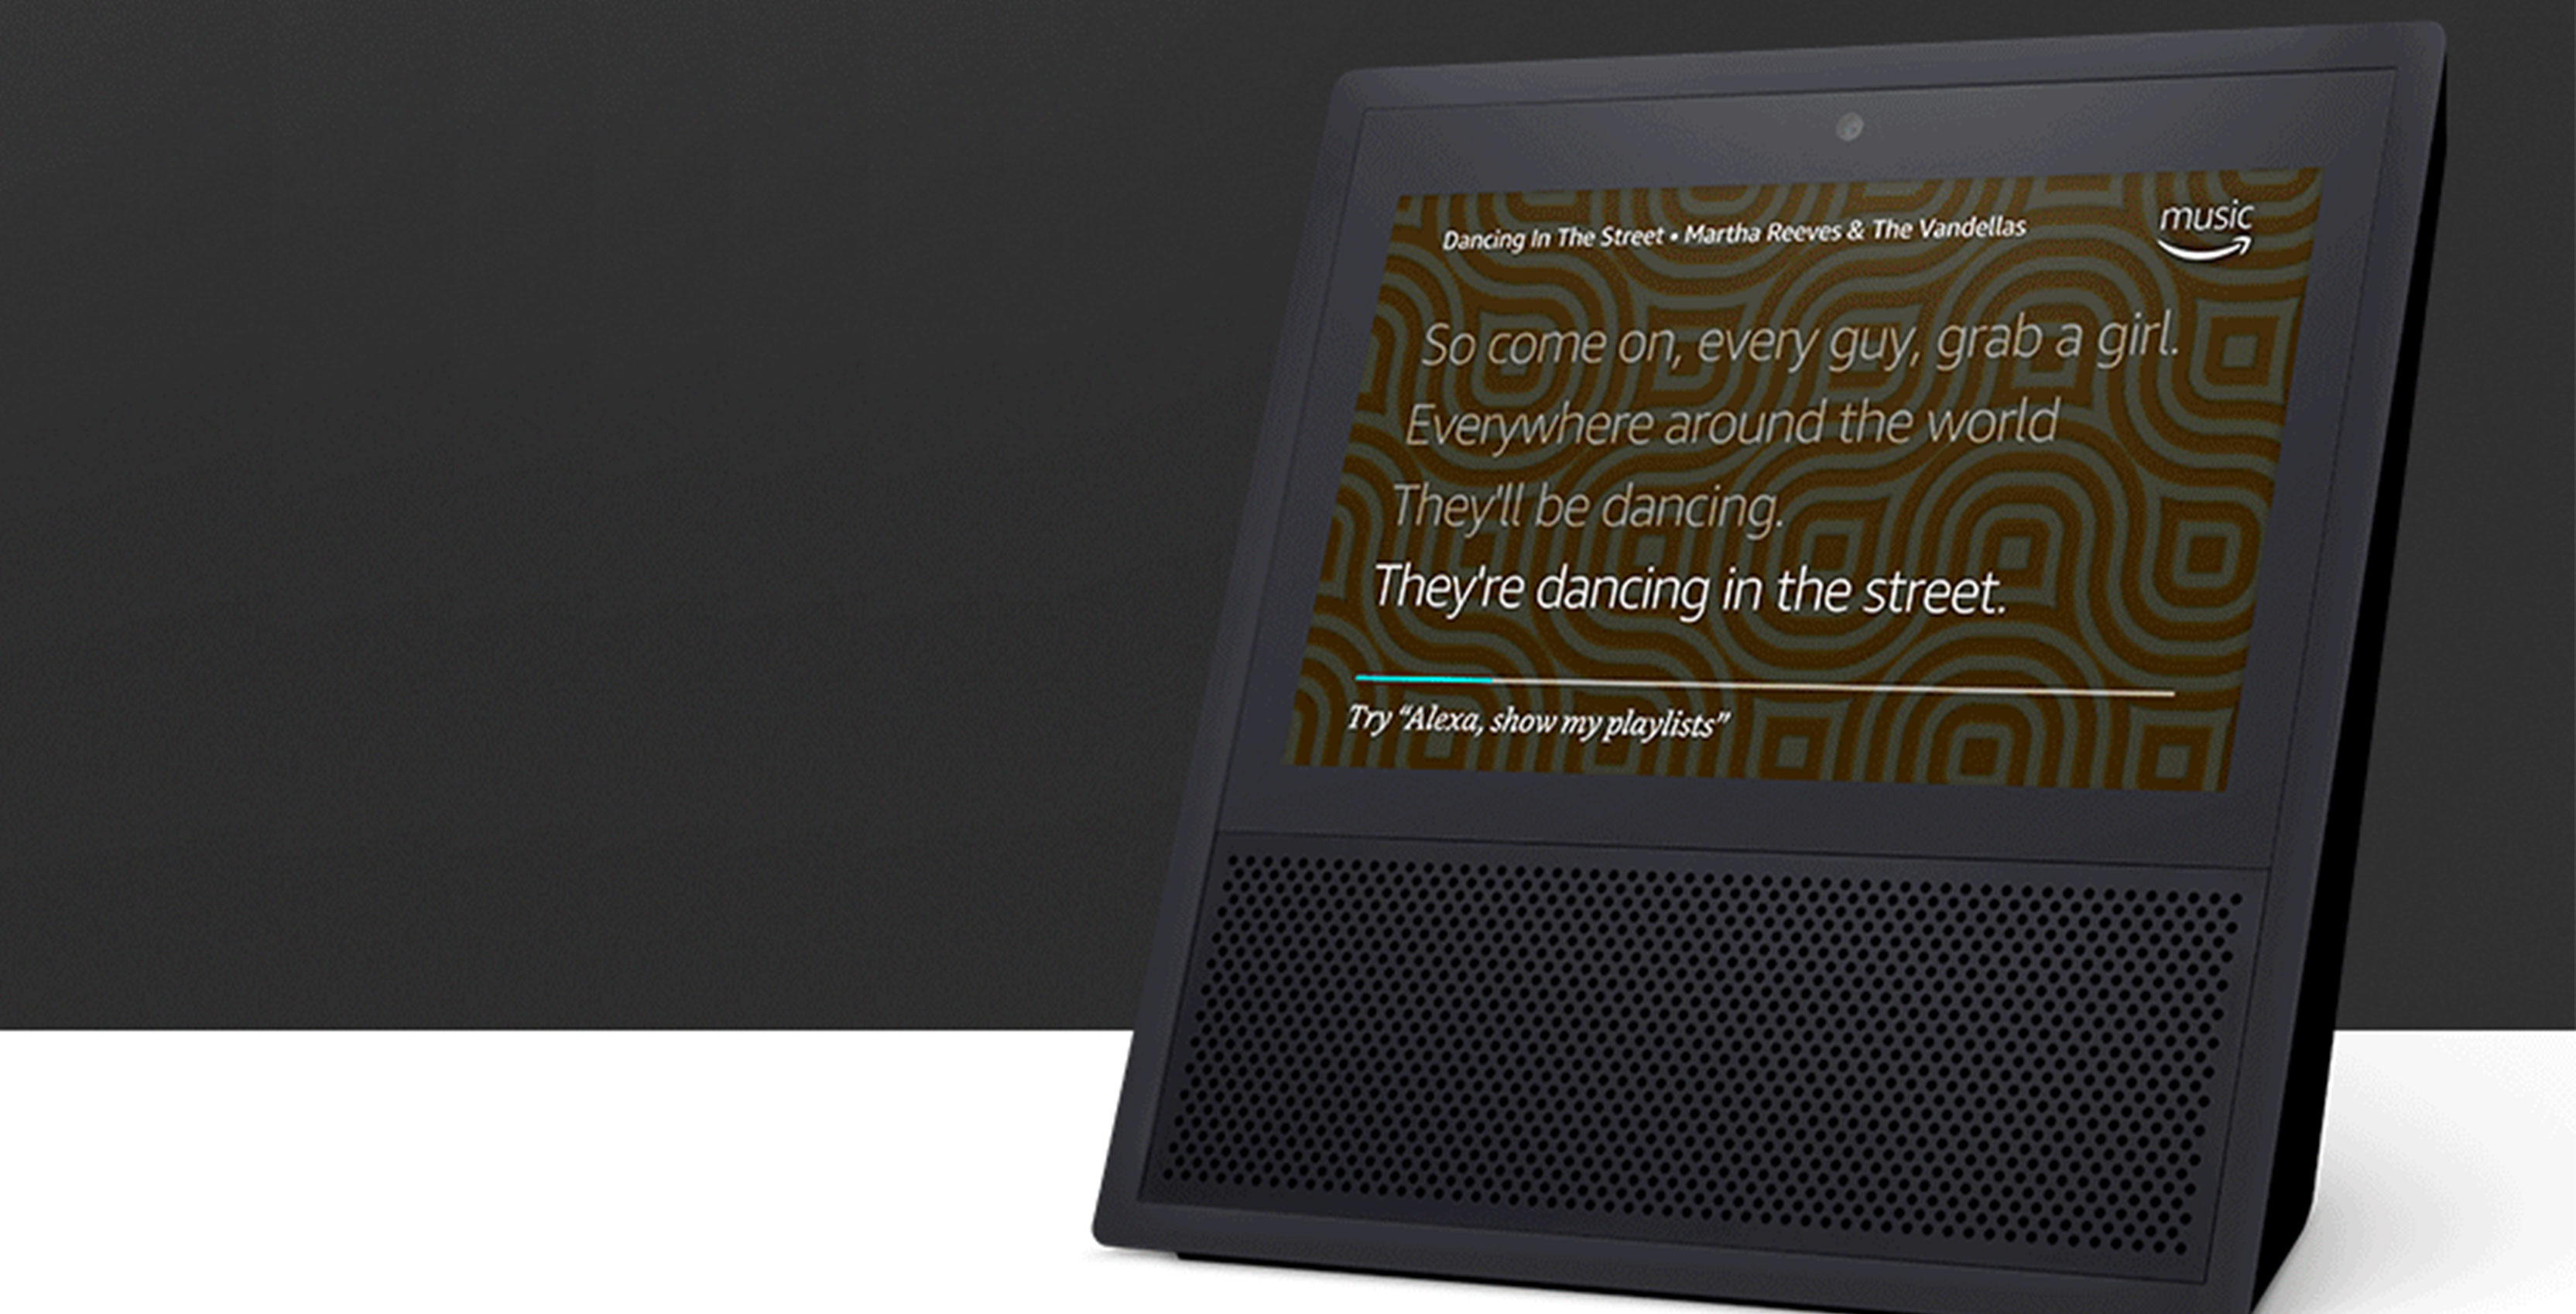 Amazon Announces Echo Show Voice Controlled Touchscreen Speaker